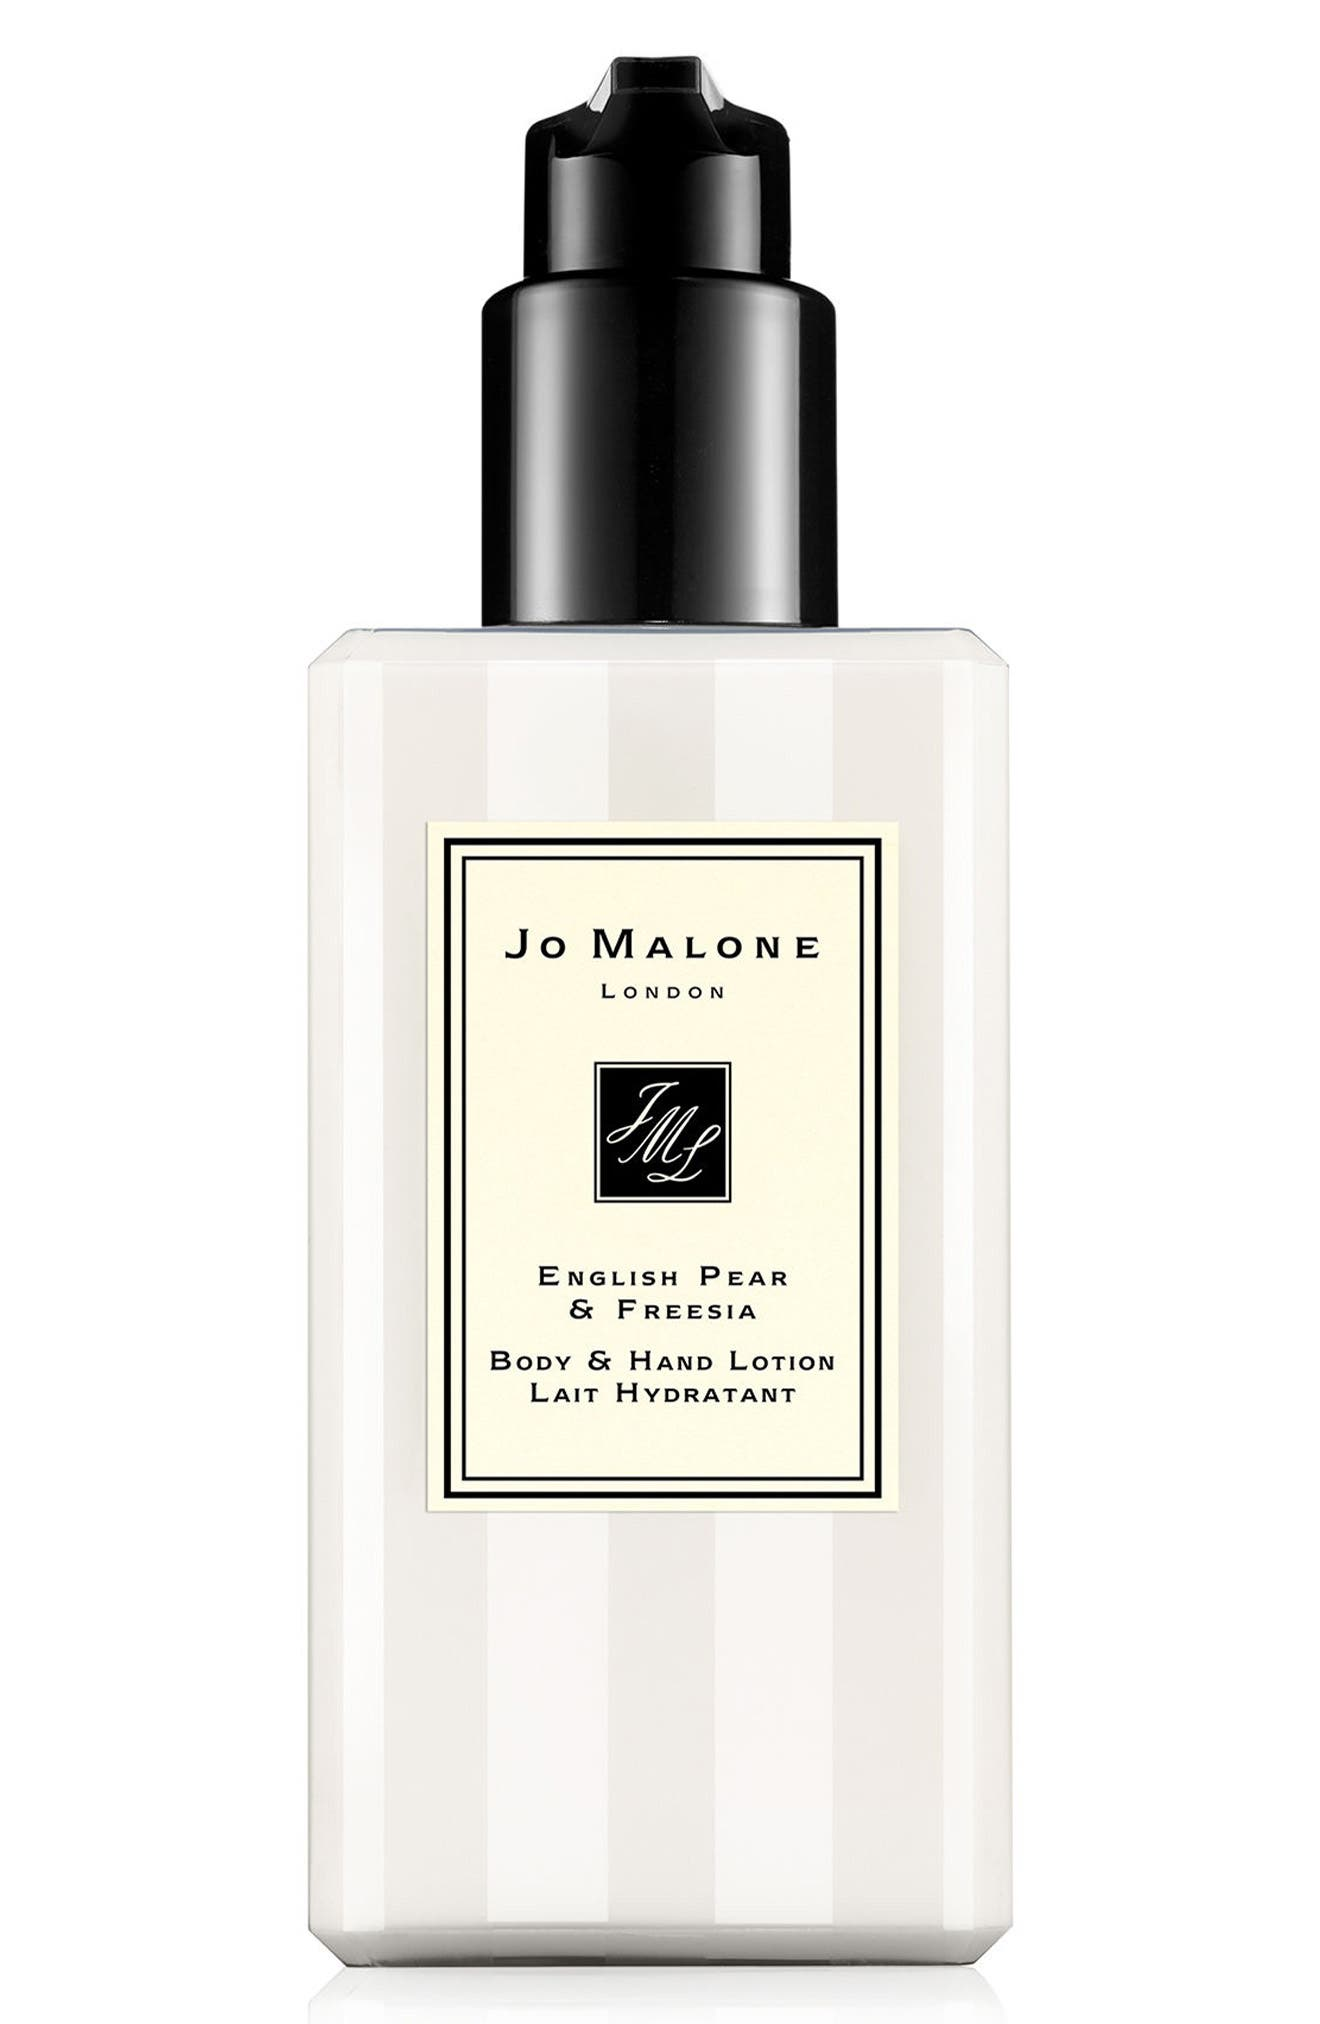 Jo Malone London™ 'English Pear & Freesia' Body & Hand Lotion